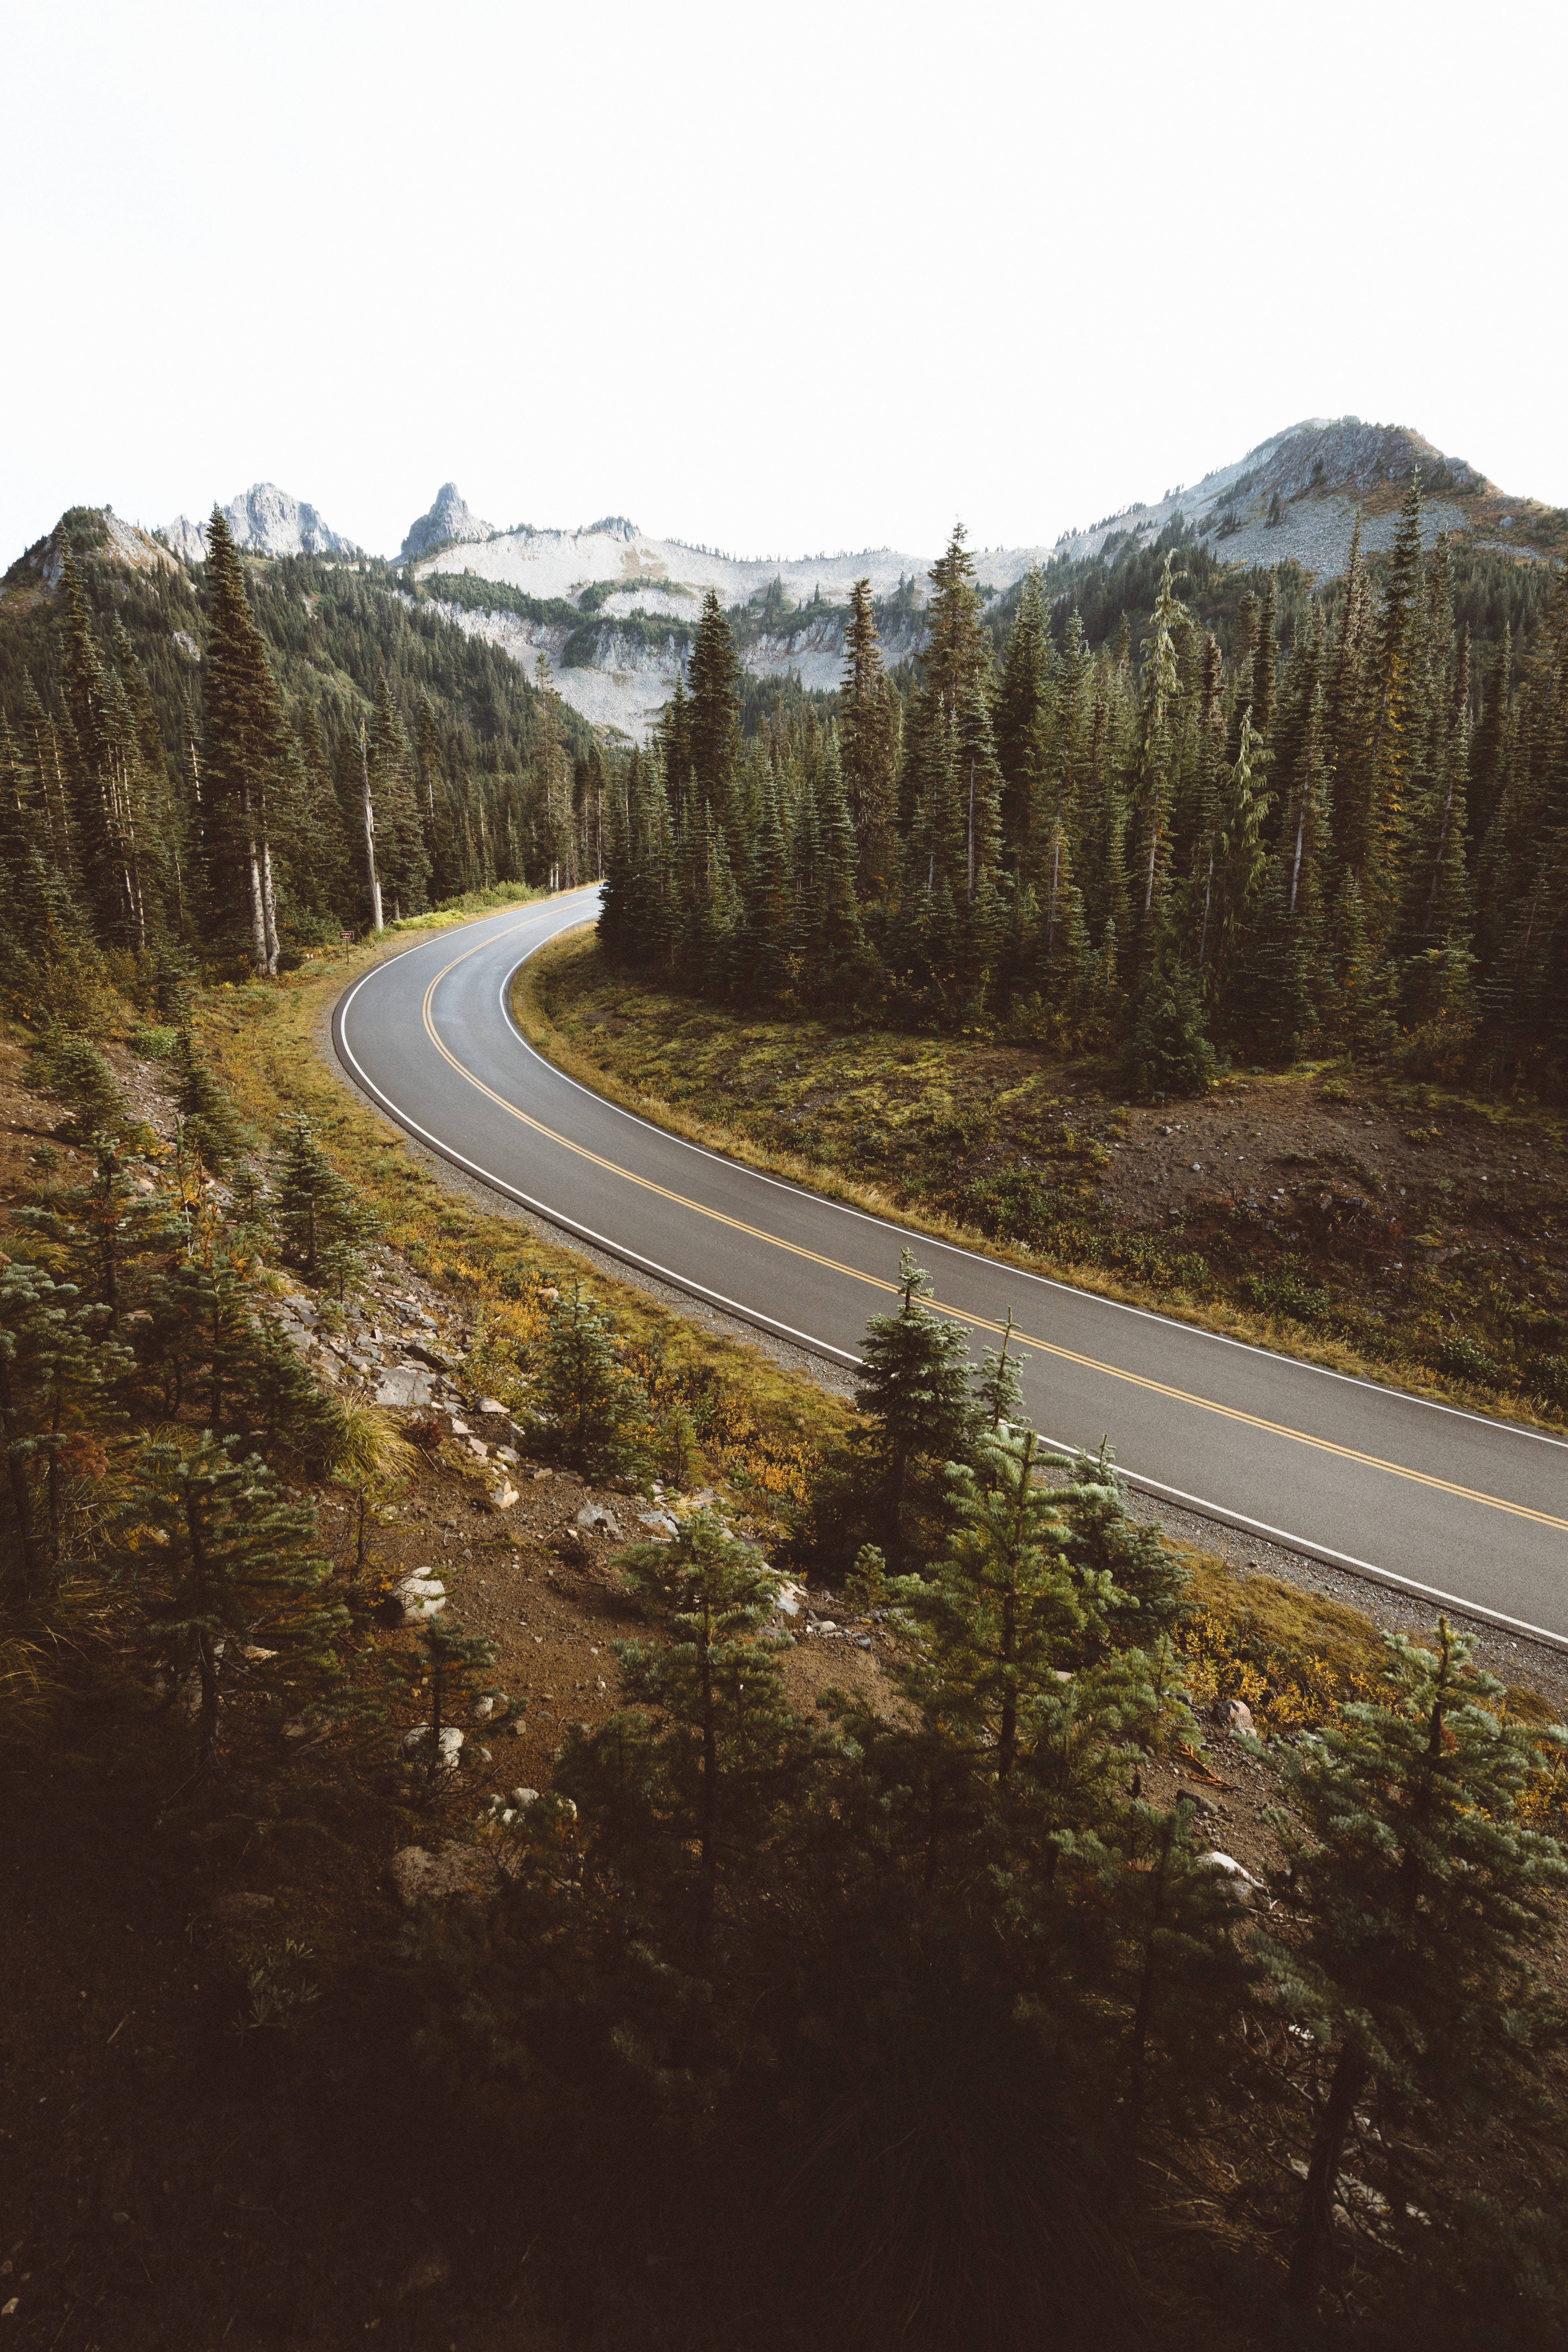 A curve in an asphalt road in the mountains